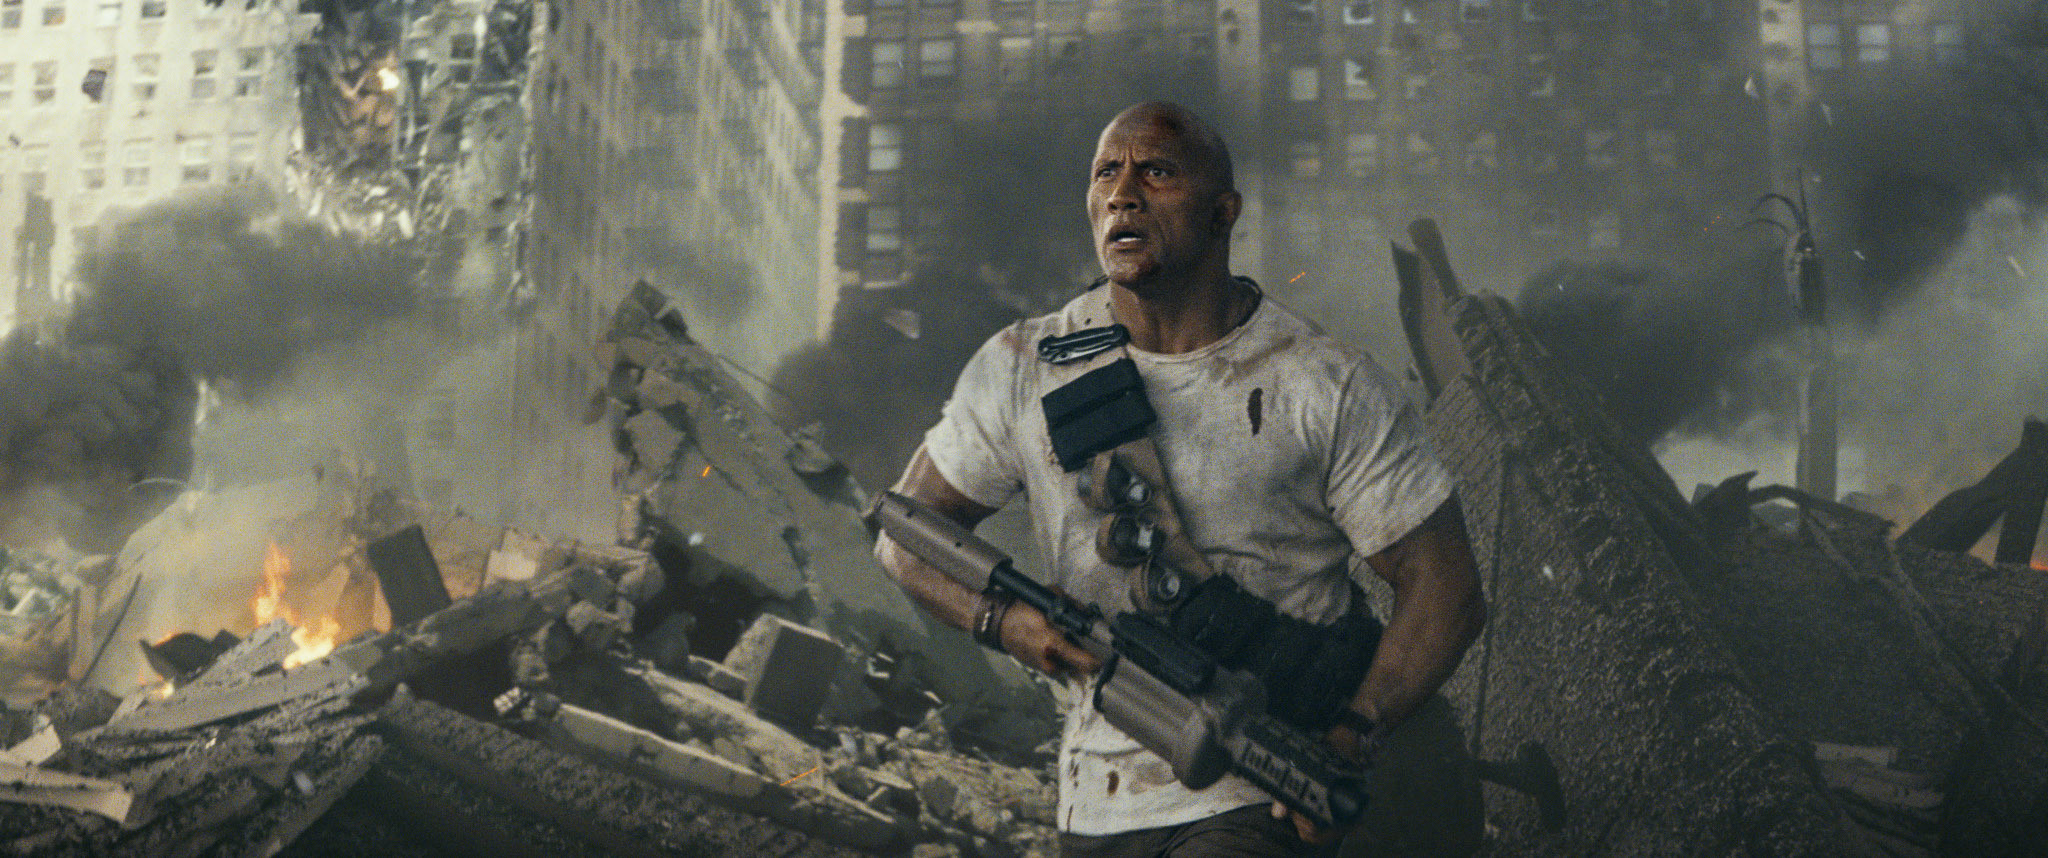 Dwayne Johnson saving the world (again) Action movies